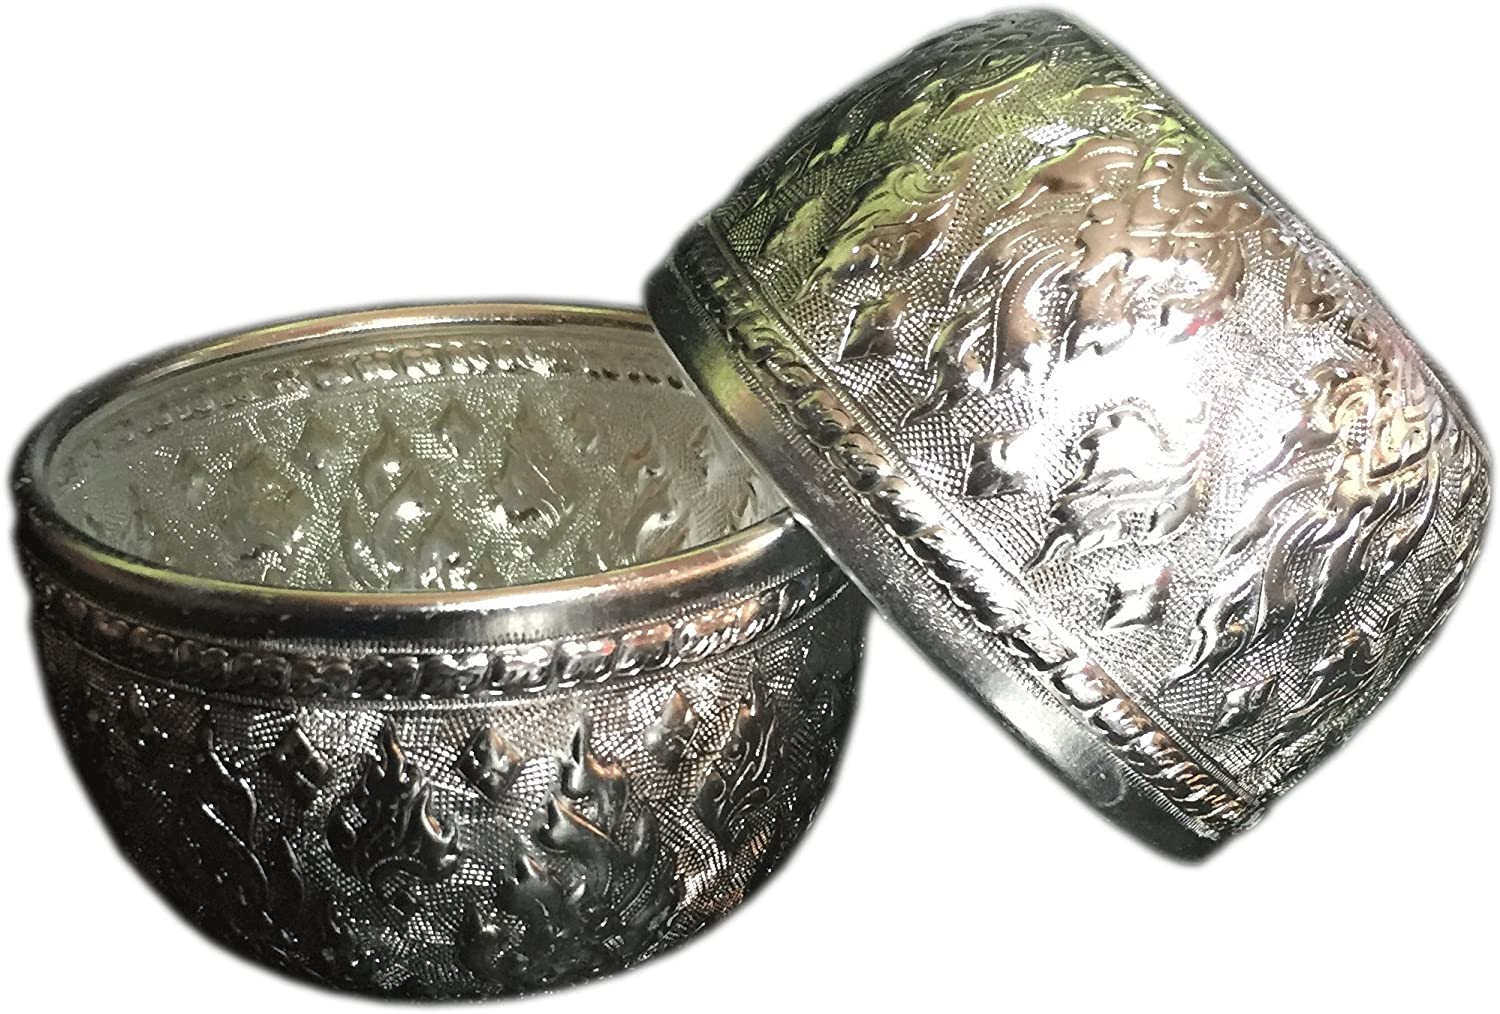 2x Aluminum water bowl Thai design silver bowl sterling bowls serving set 3